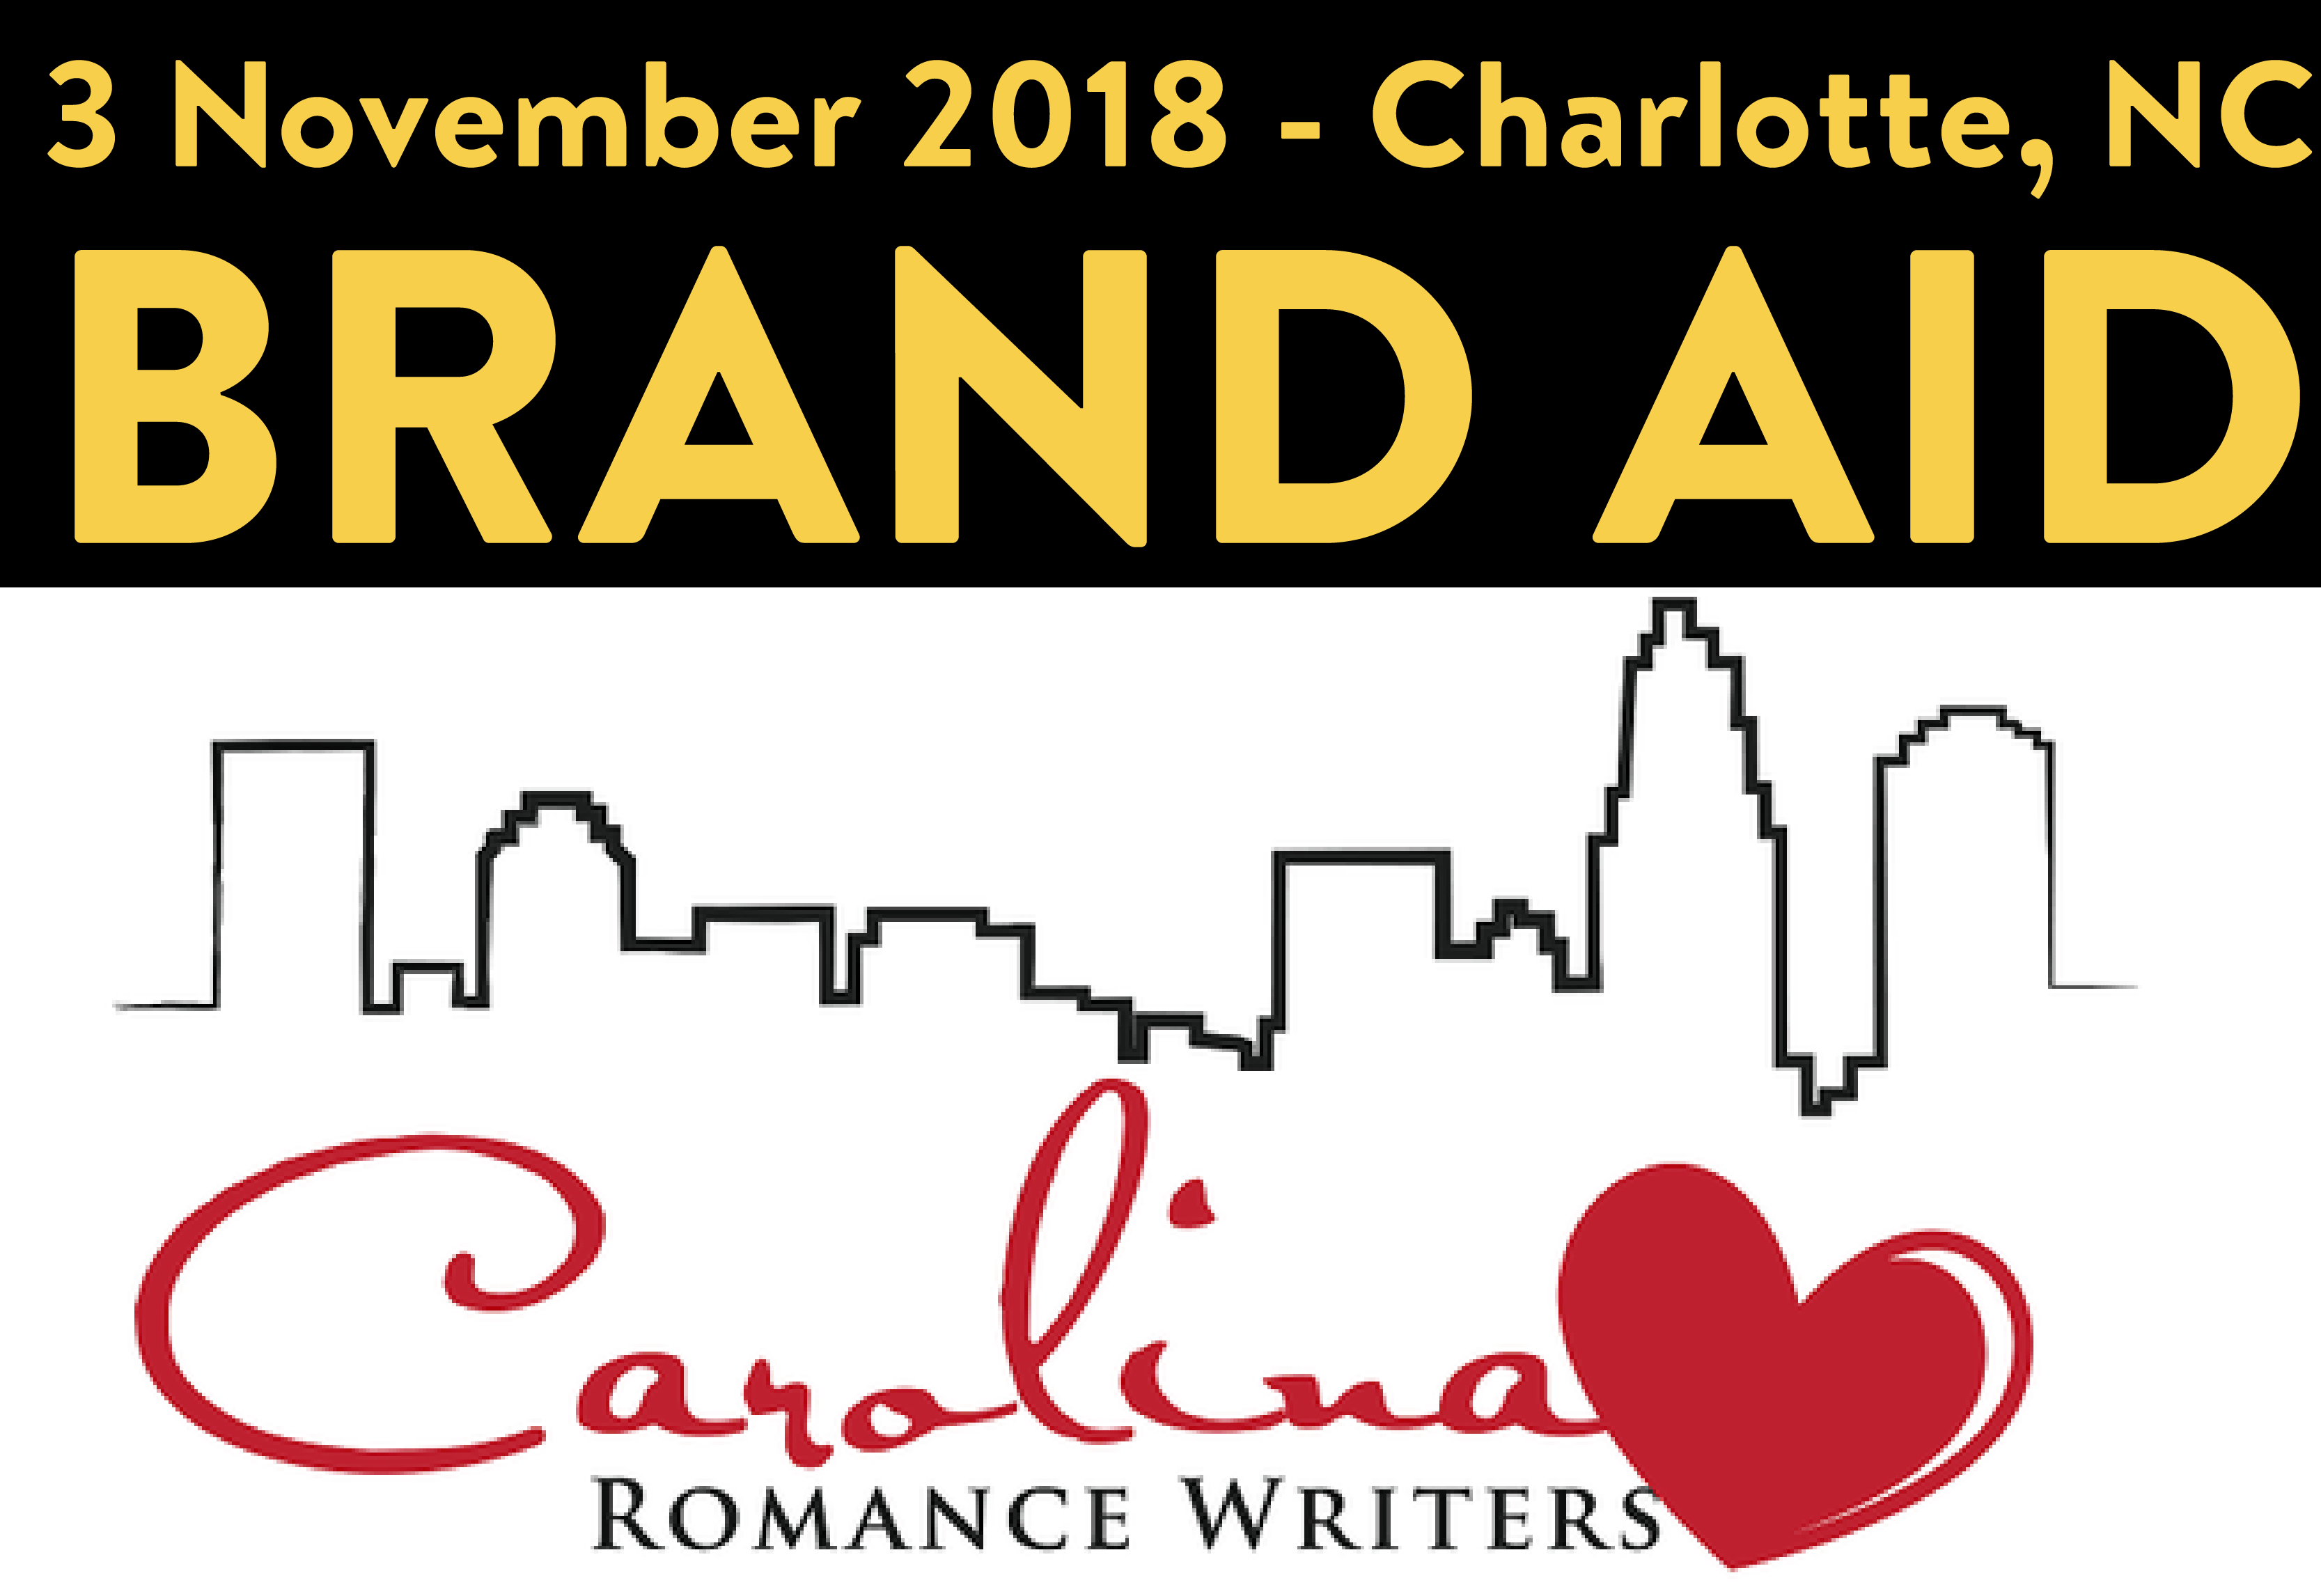 Carolina Romance Writers (Charlotte, NC)